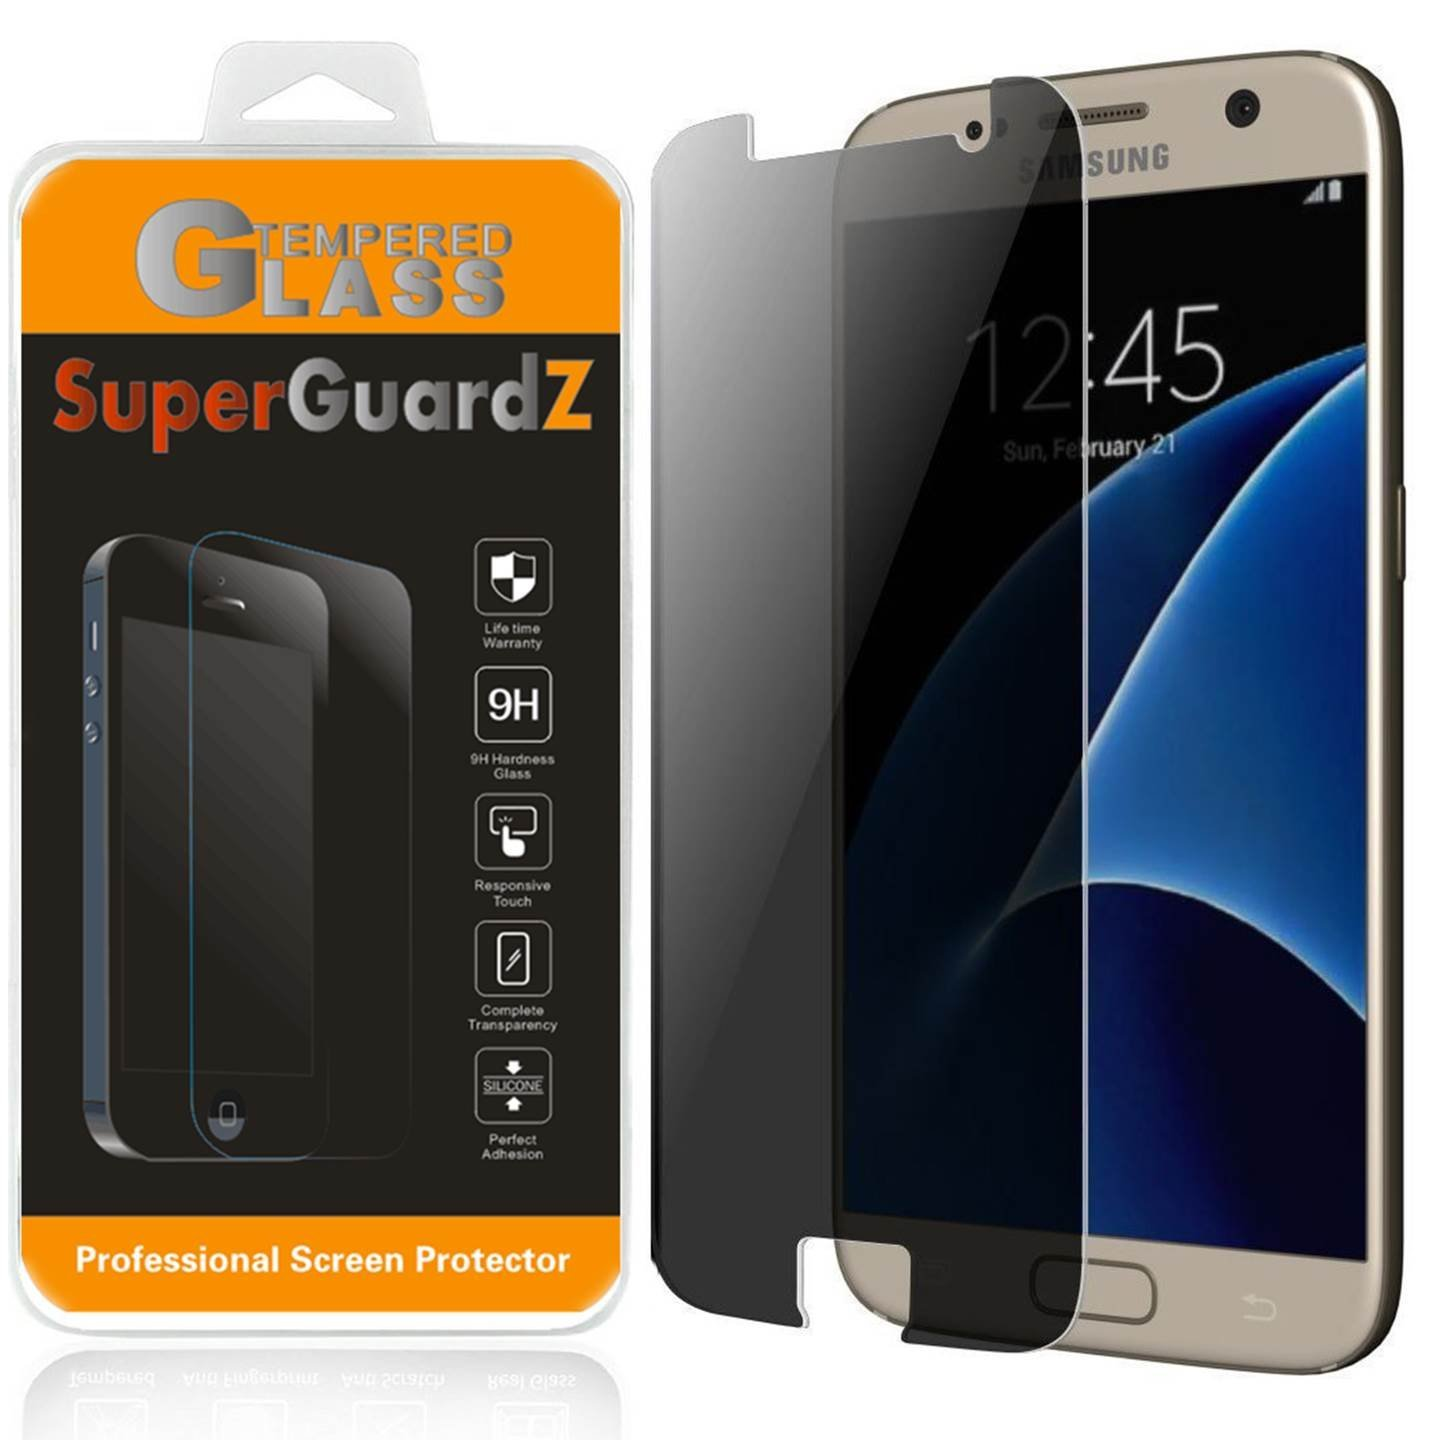 For Samsung Galaxy S7 - SuperGuardZ Privacy Anti-Spy Tempered Glass Screen Protector, 9H, Anti-Scratch, Anti-Bubble, Anti-Fingerprint